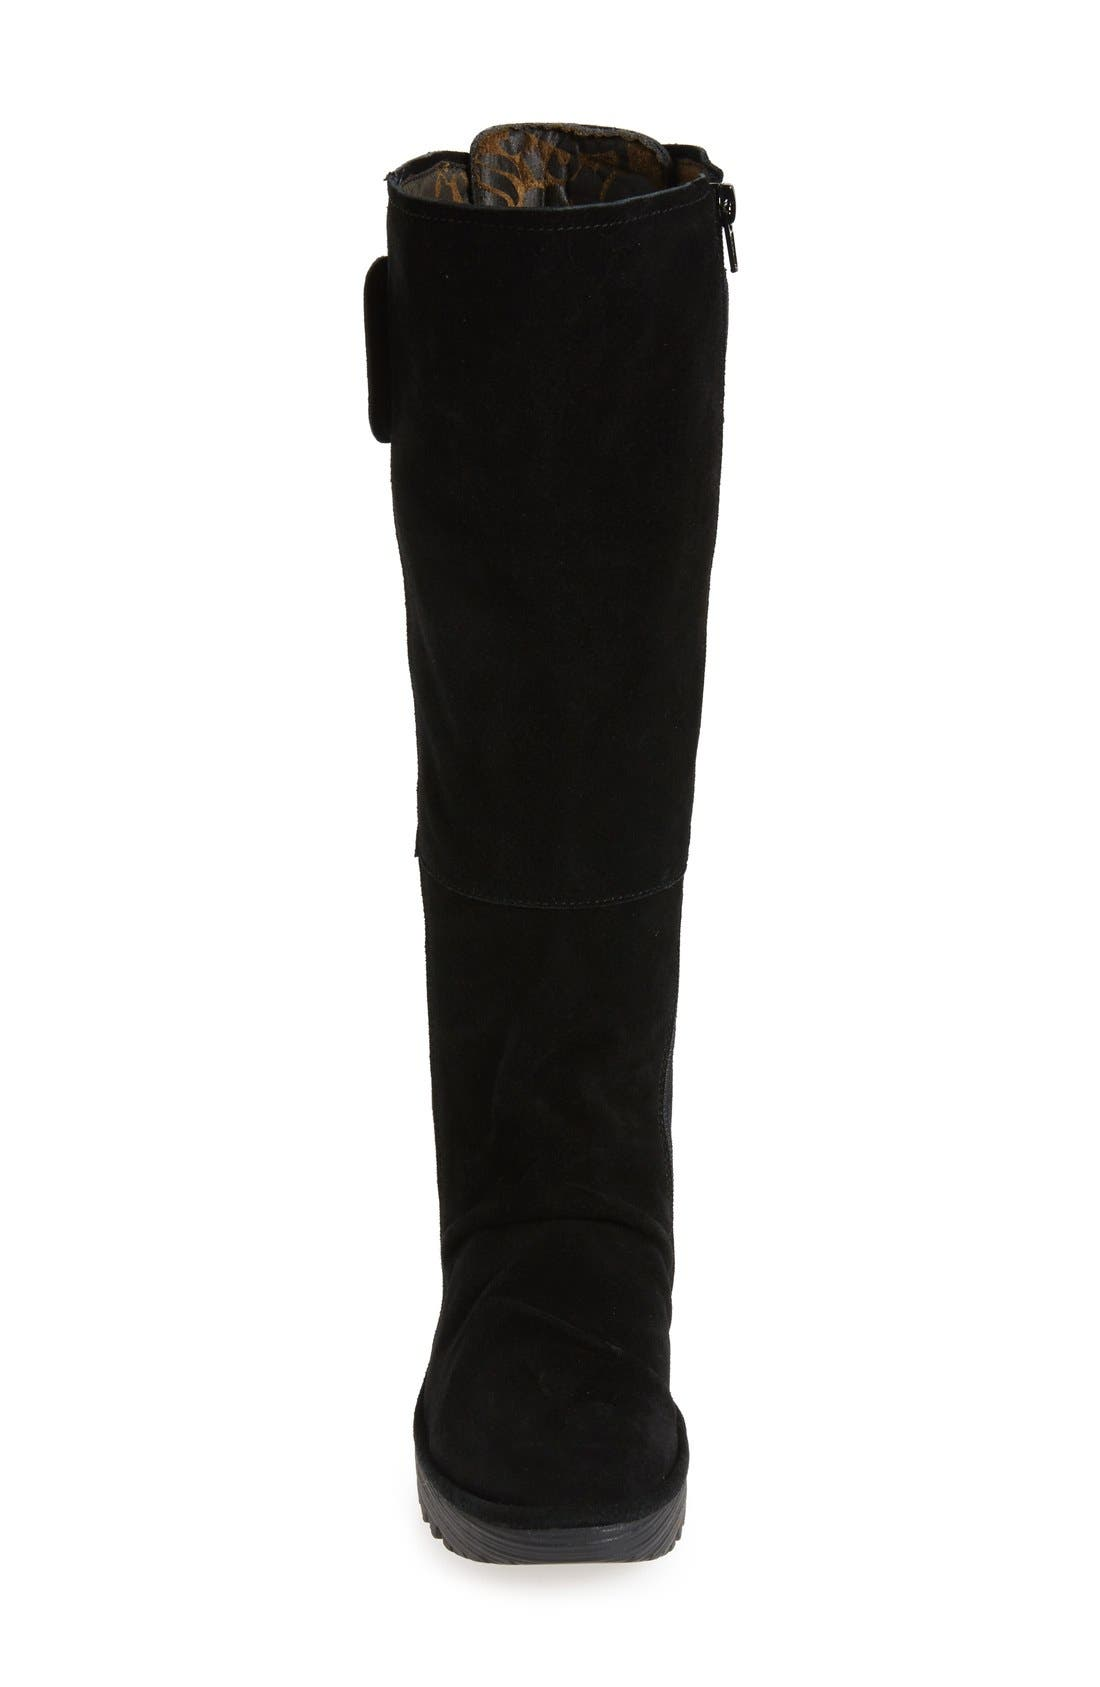 'Yulo' Knee High Wedge Platform Boot,                             Alternate thumbnail 3, color,                             003